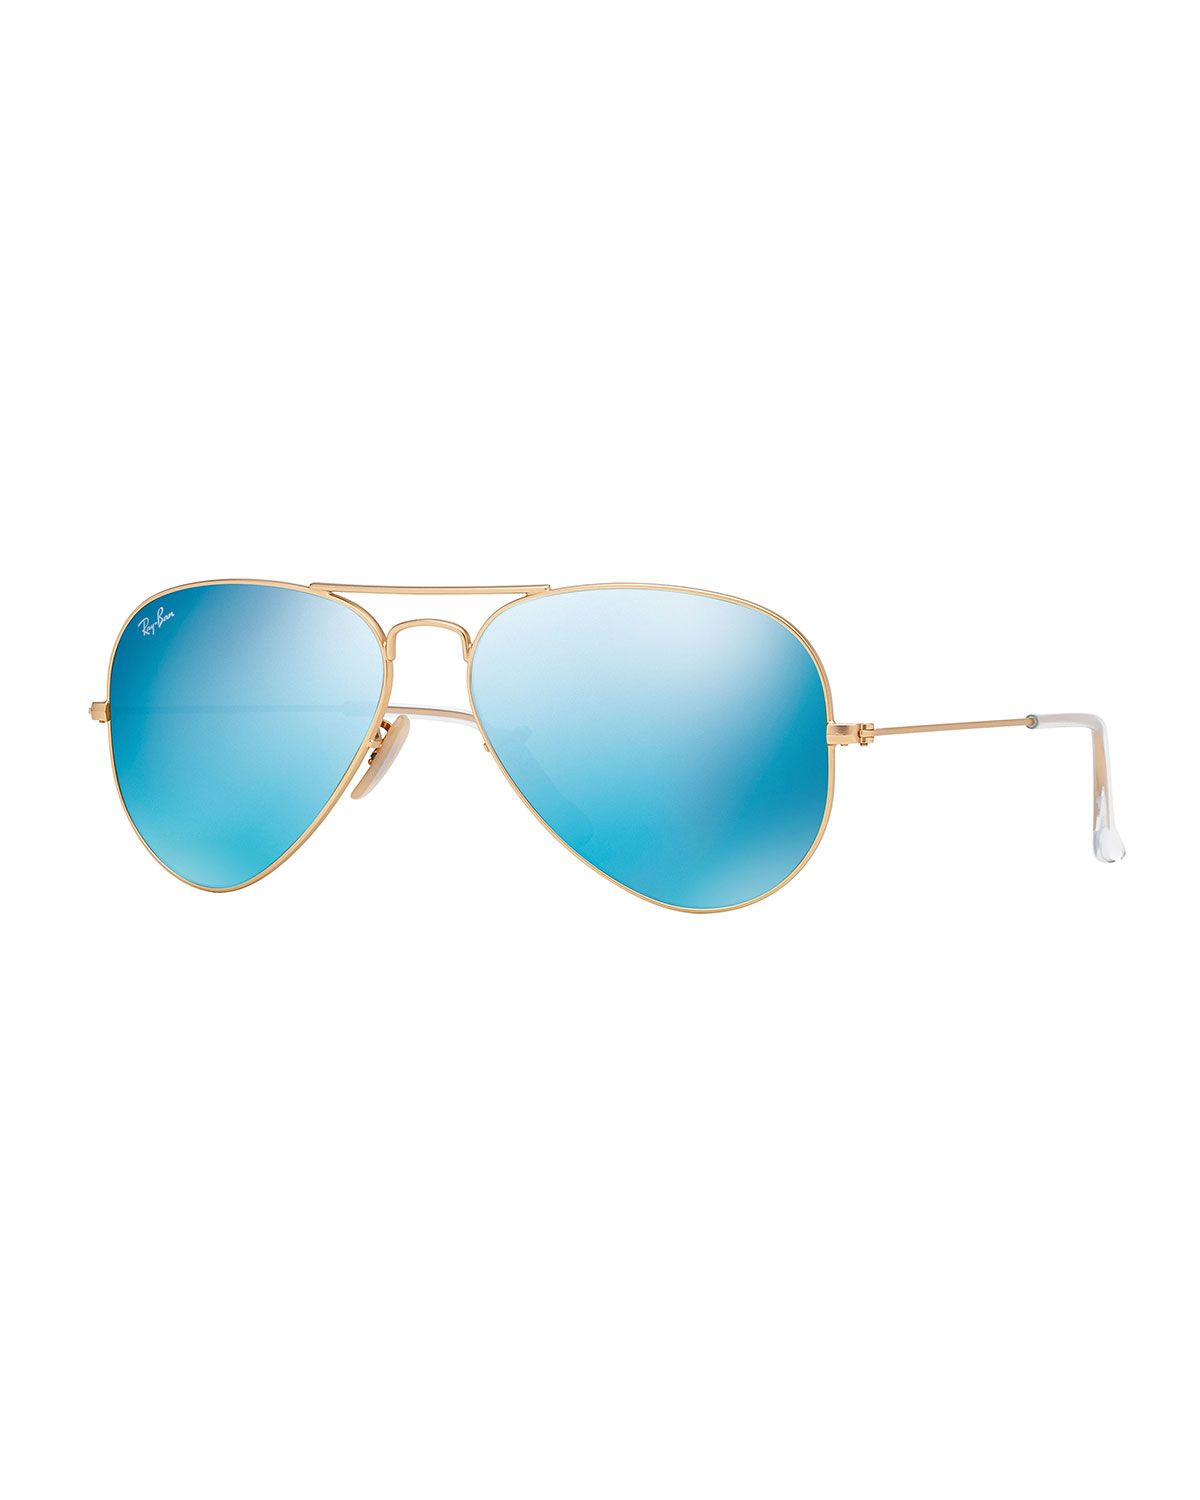 c0546ef19b484 Mirrored Aviator Sunglasses, Golden Blue, Size  62MM, Gold Blue Mirror - Ray -Ban